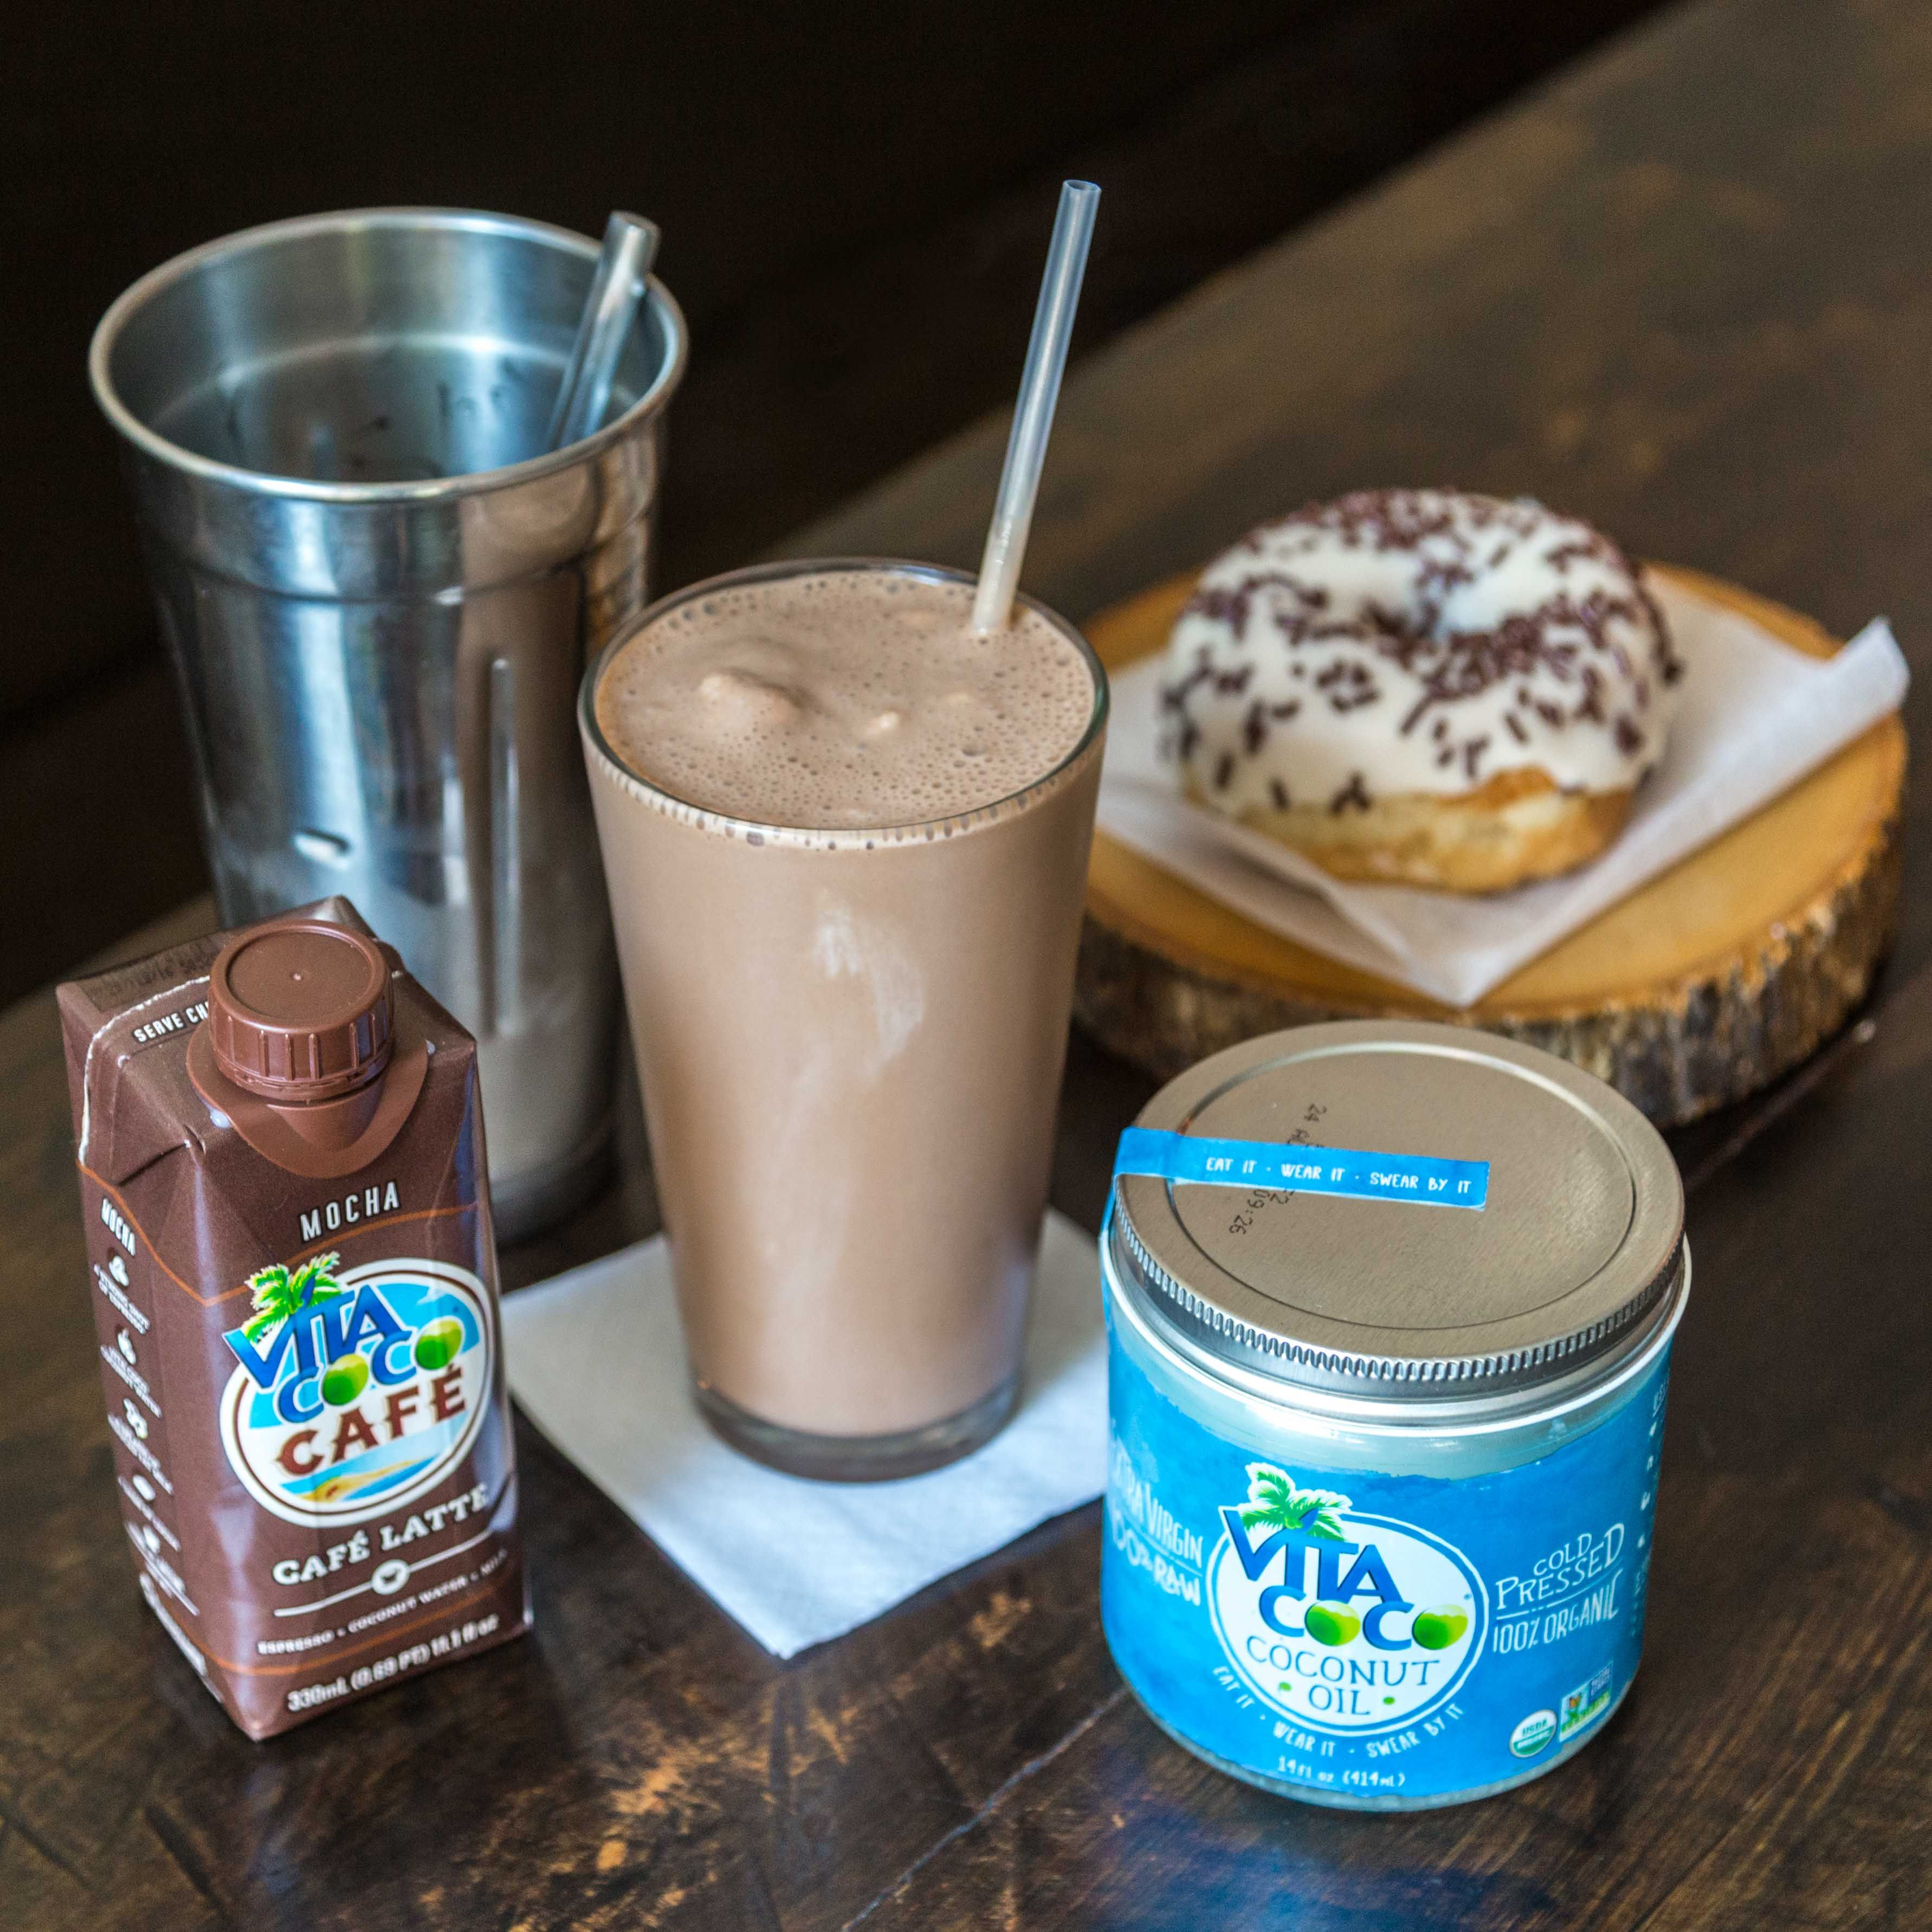 A new spin on the traditional chocolate milkshake for National Chocolate Milkshake Day.  Blend 1½ cups of Vita Coco Café Mocha, 2 tablespoons of Vita Coco Coconut Oil, 2 cups (or a pint) of your favorite chocolate ice cream, and 2 tablespoons of cocoa powder and enjoy!